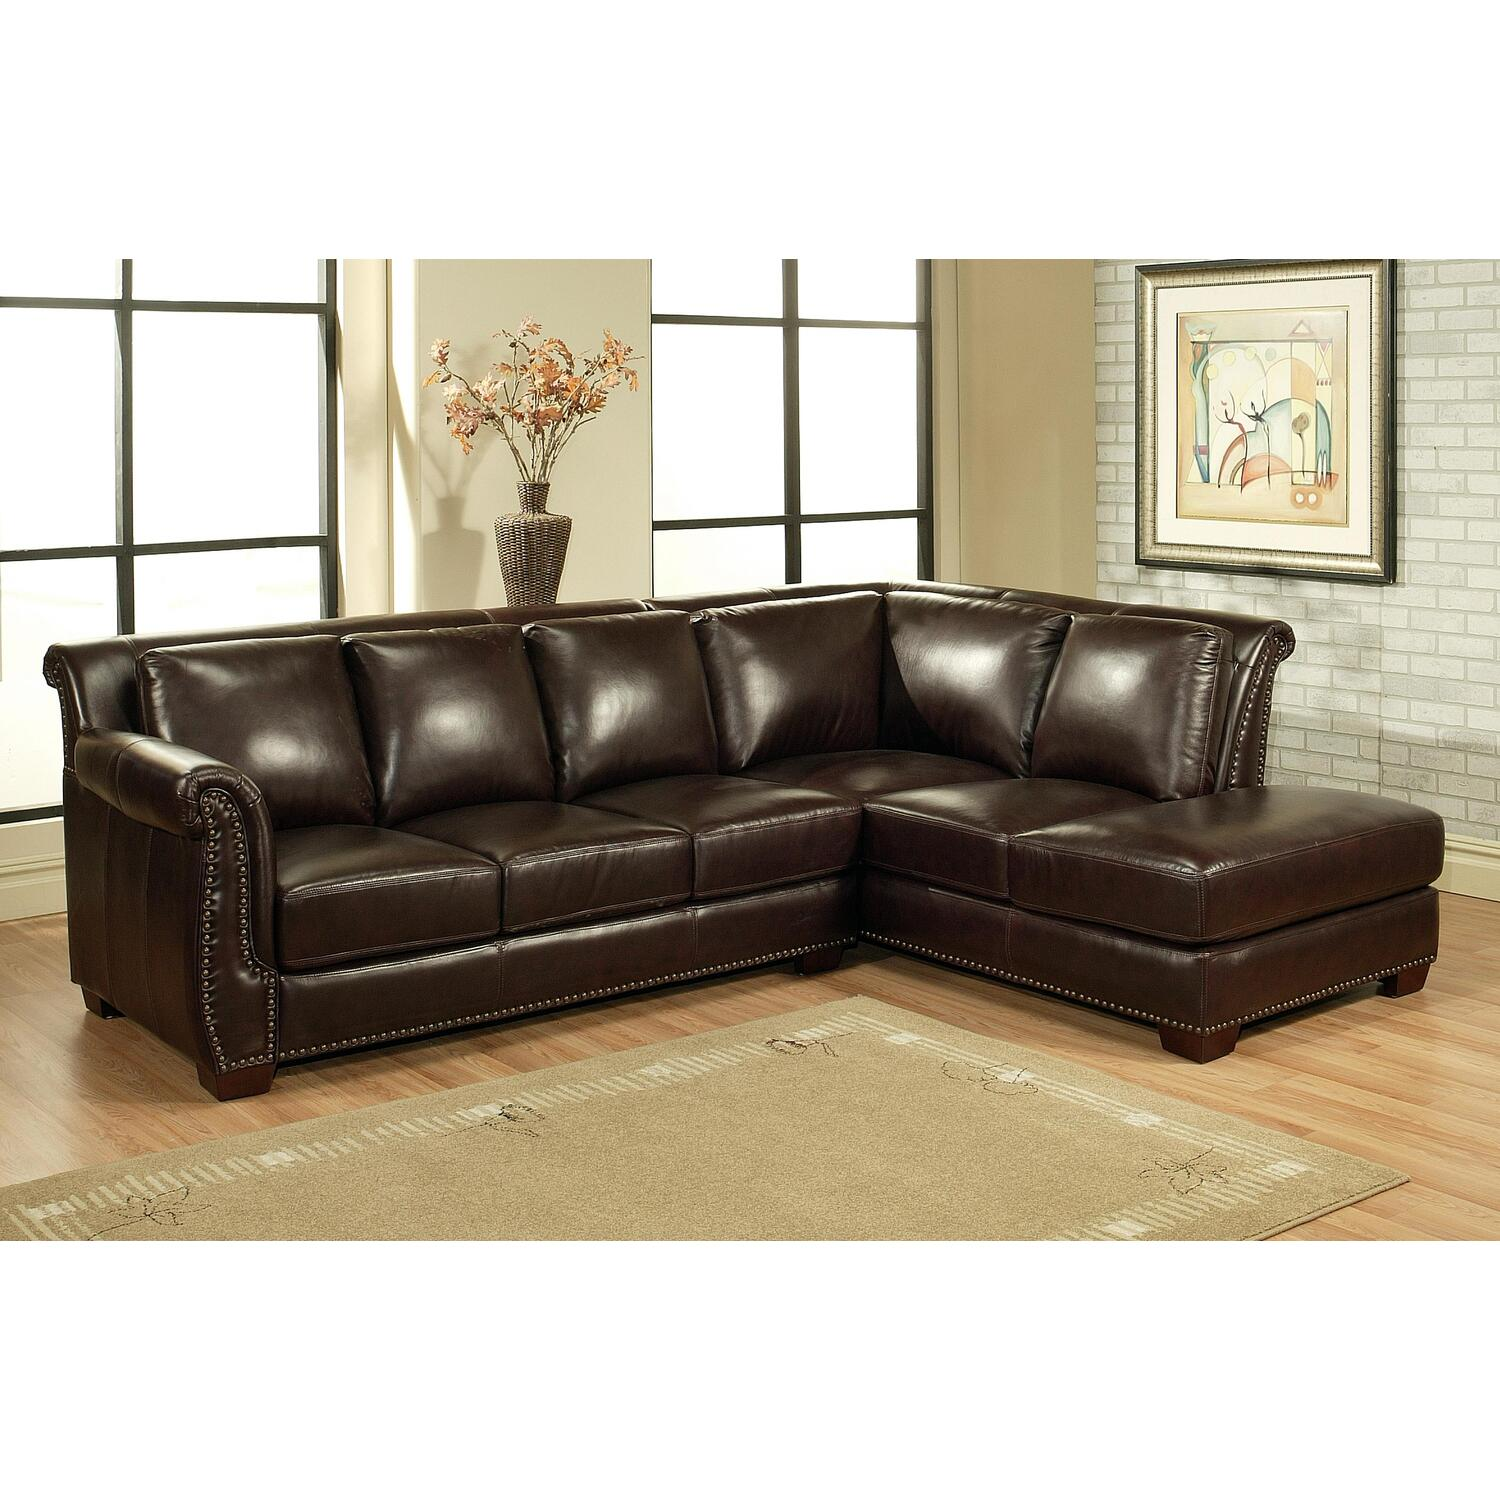 Abbyson Living Italian Leather Sectional Sofa By Oj